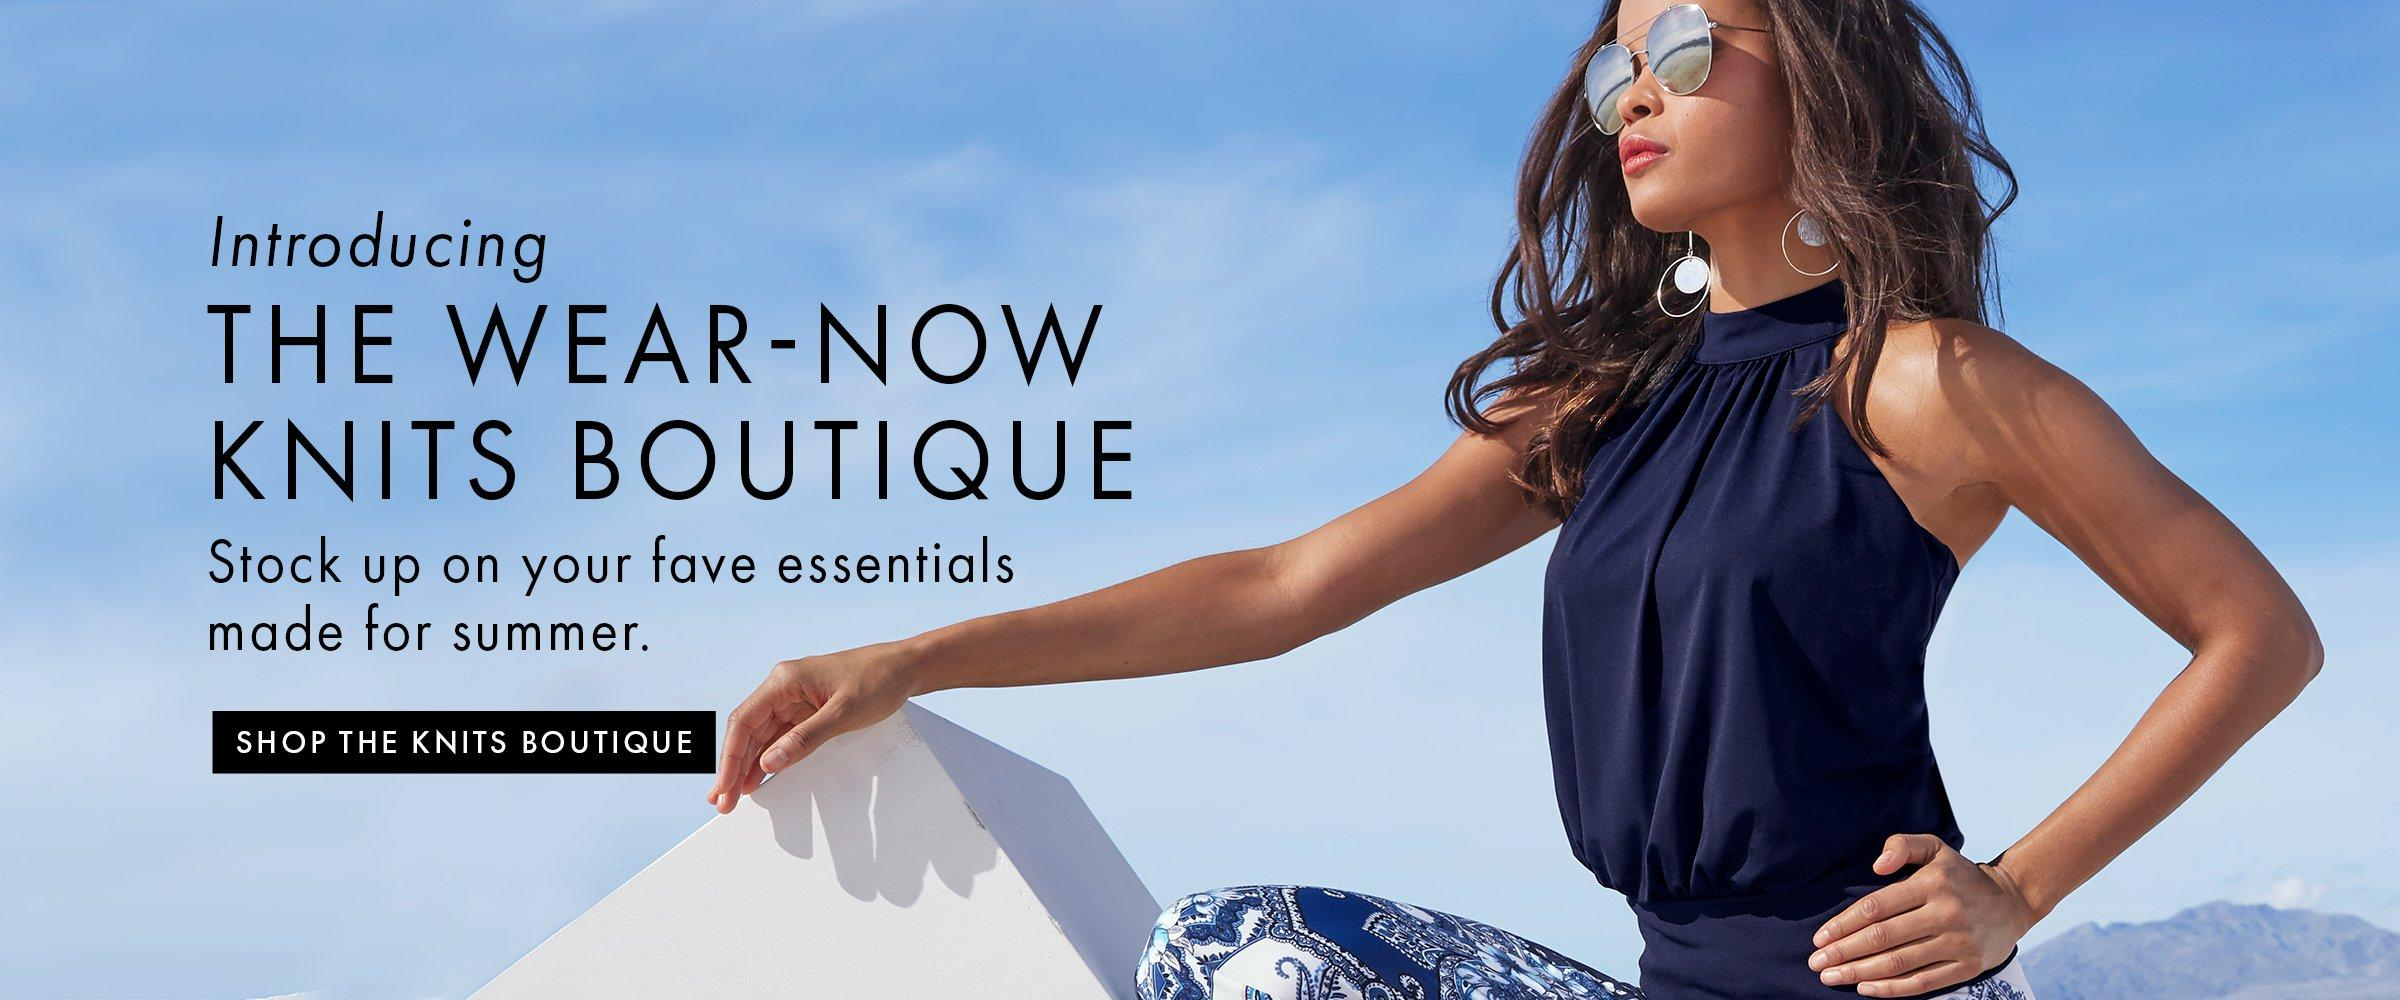 black text next to a model wearing a navy mock-neck sleeveless blouson top, sunglasses, and blue and white pants: introducing the wear-now knits boutique. stock up on your fave essentials made for summer. shop the knits boutique.